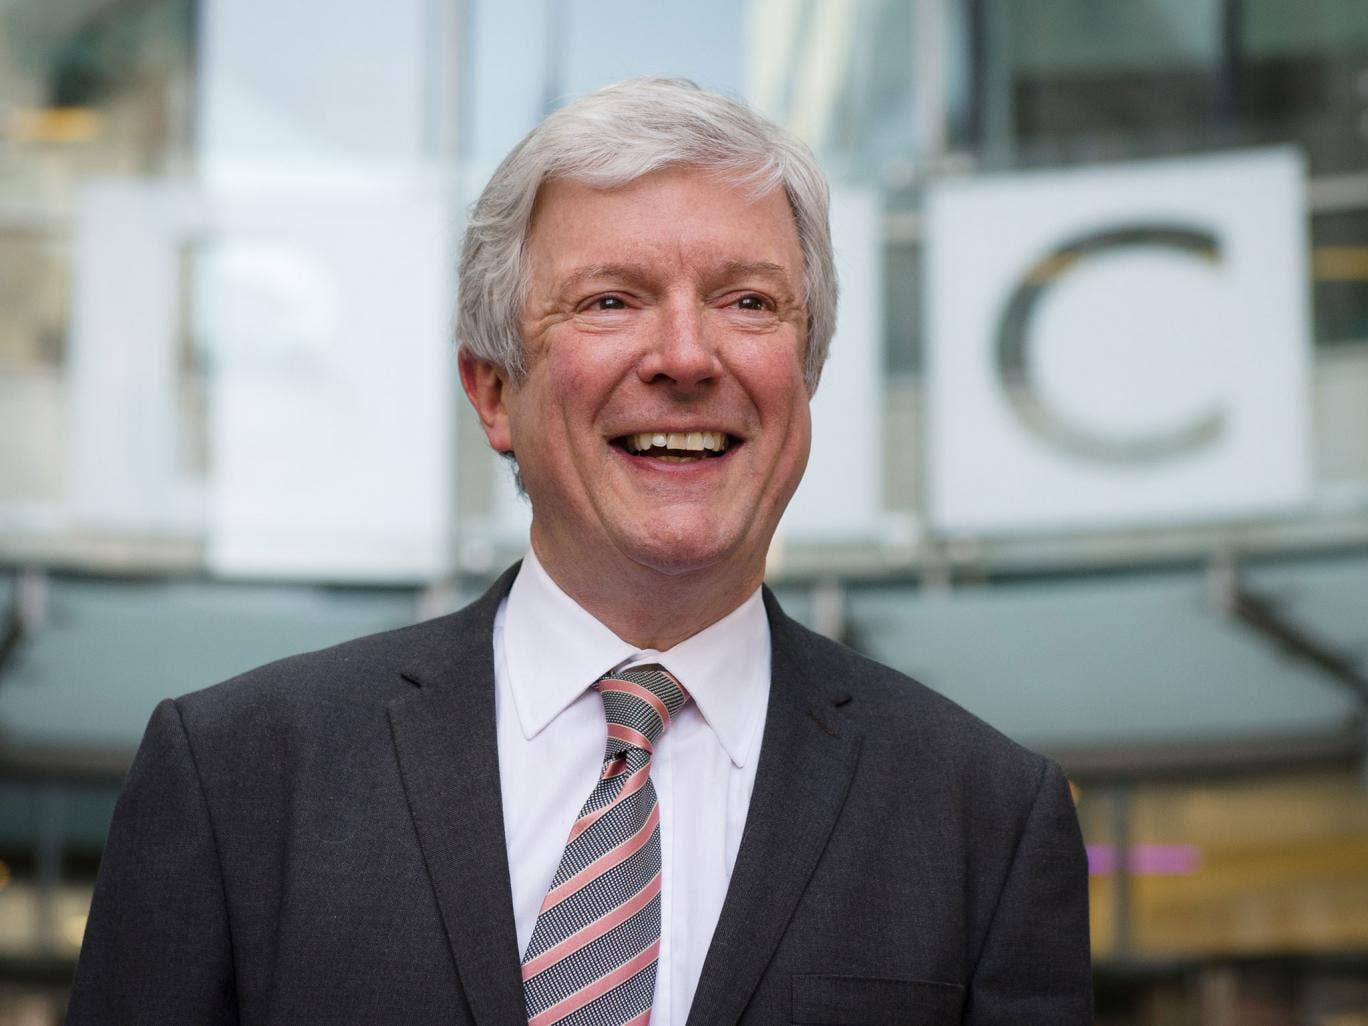 Tony Hall smiles as he arrives for his first day as Director General of the BBC at New Broadcasting House in central London on April 2, 2013. Having previously worked as Chief Executive at the Royal Opera House, the new BBC chief must now deal with the fa